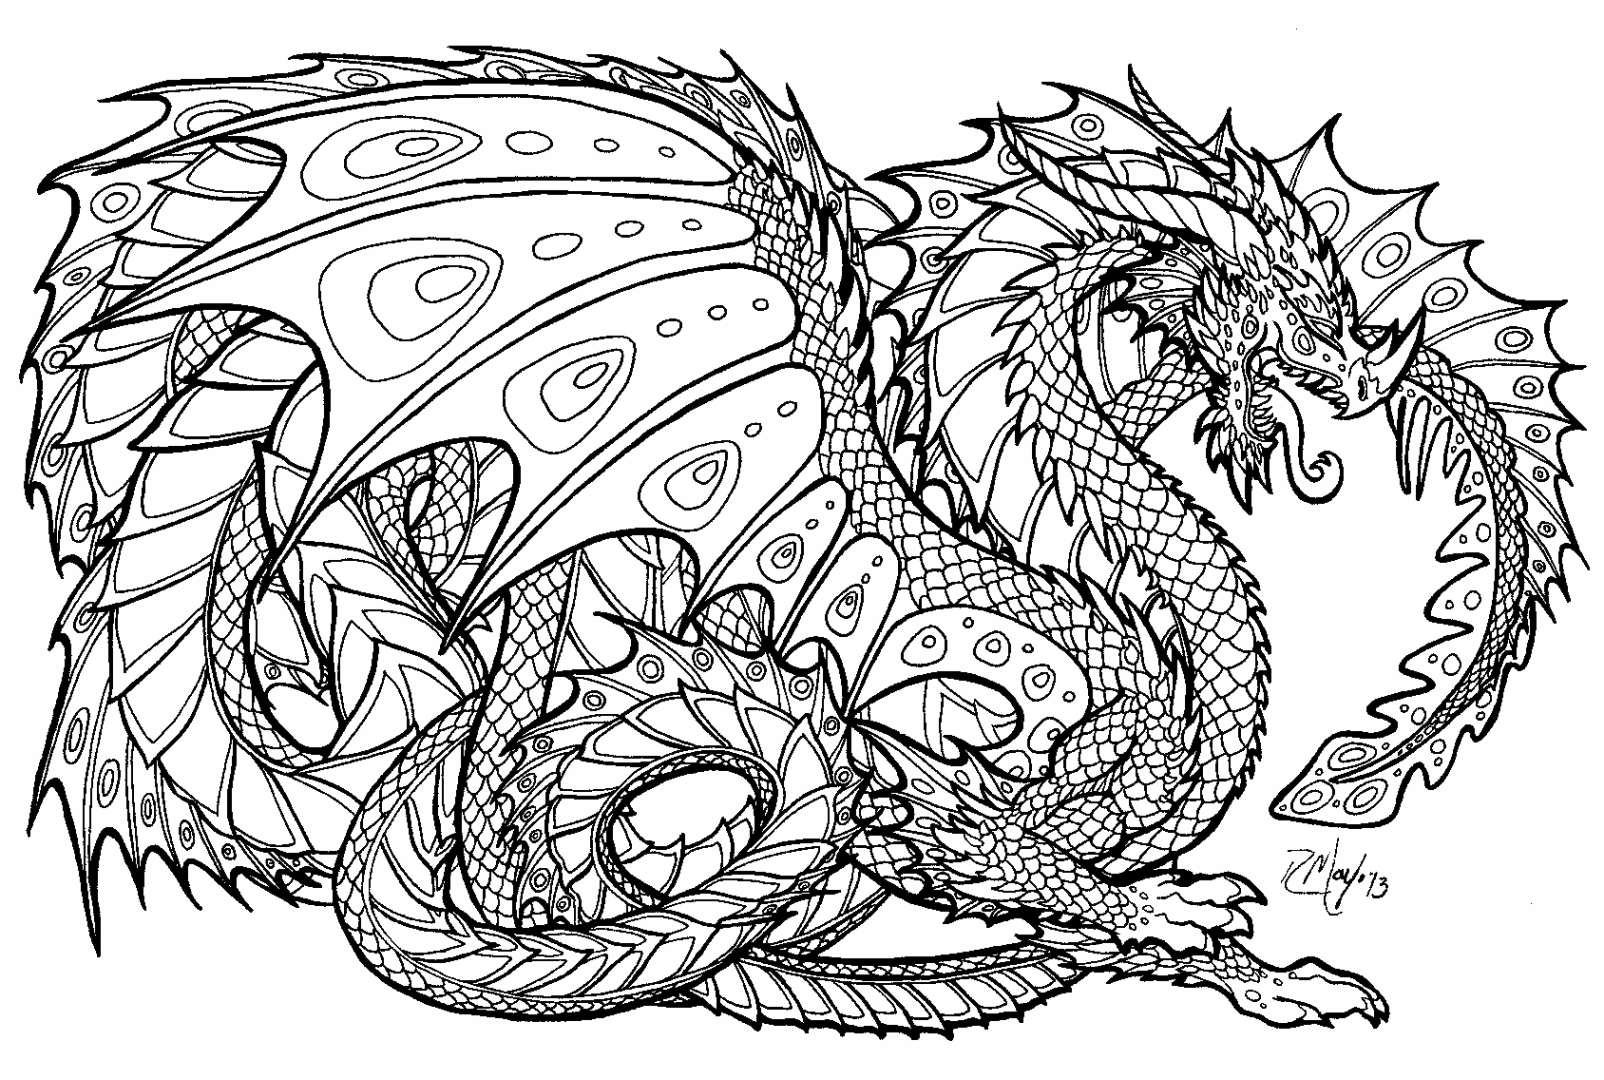 detailed coloring pages - Detailed Coloring Pages 2